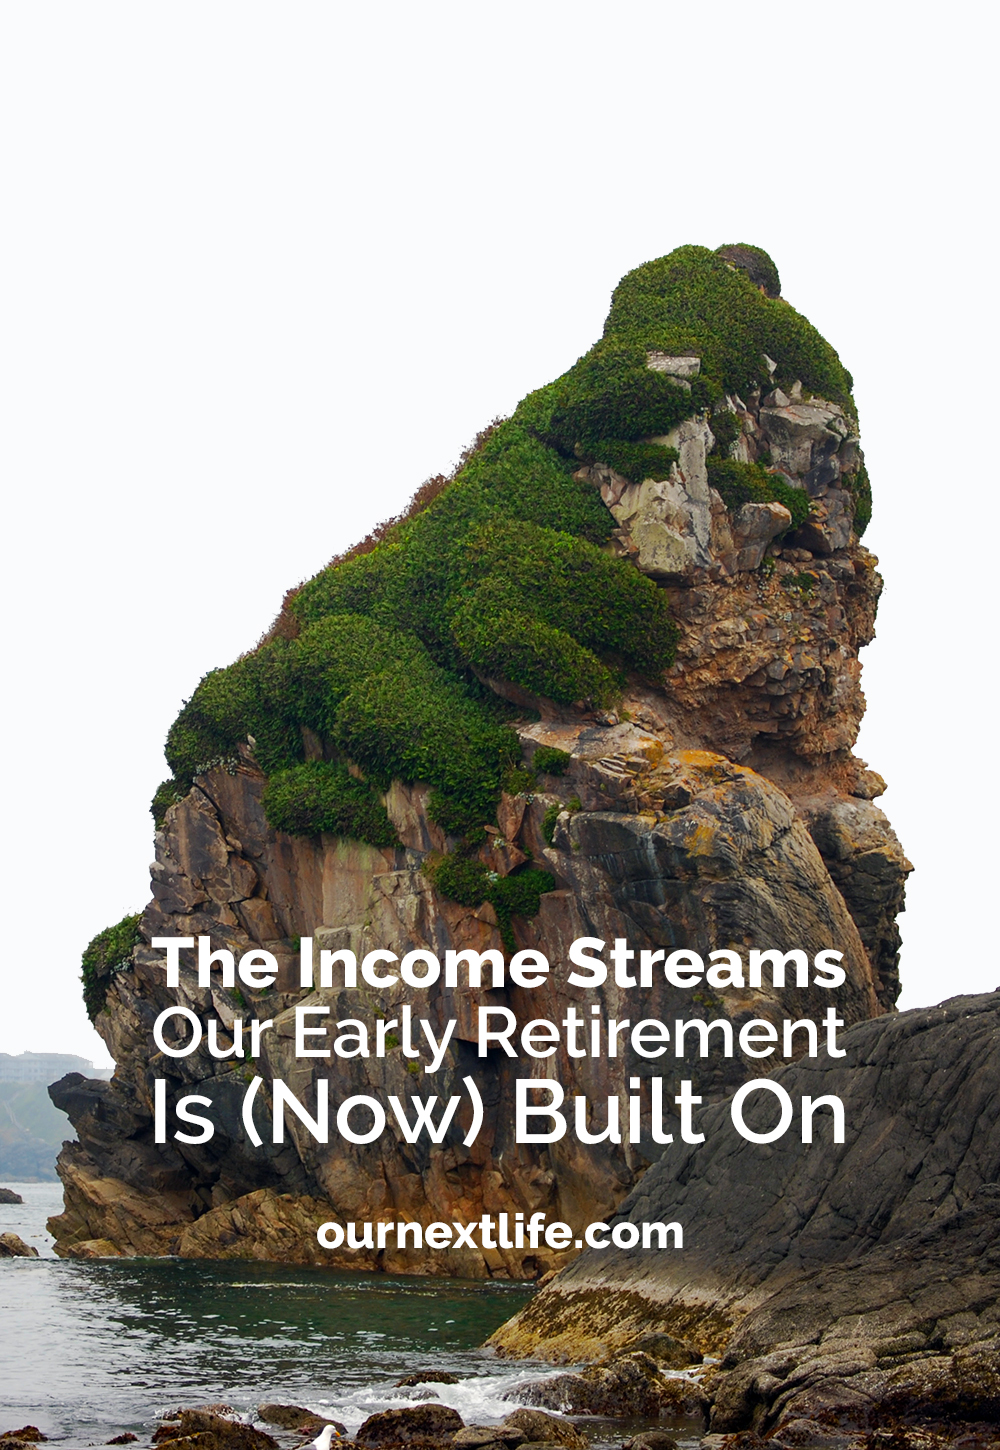 The income streams and cash flow sources that will fund our early retirement. Selling shares, dividends, rental income, personal loan payments and even a little bit of very part-time work!